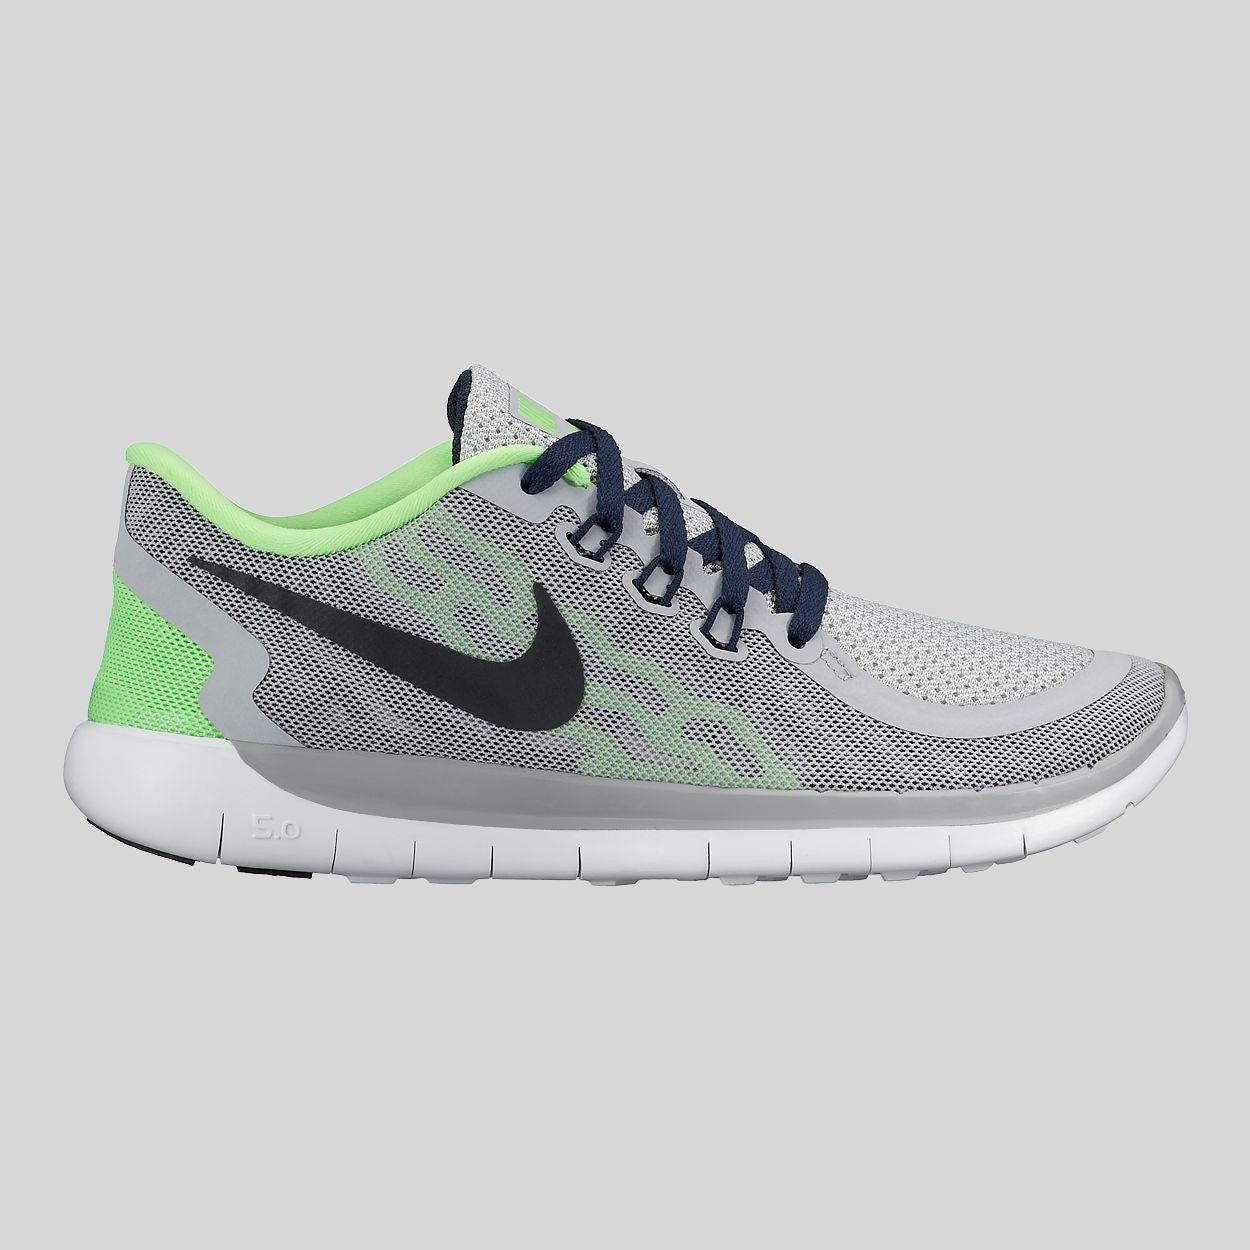 5d1f3db7b69ba Nike Performance FREE RUN COMMUTER - Trainers - squadron blue dark  obsidian heritage cyan